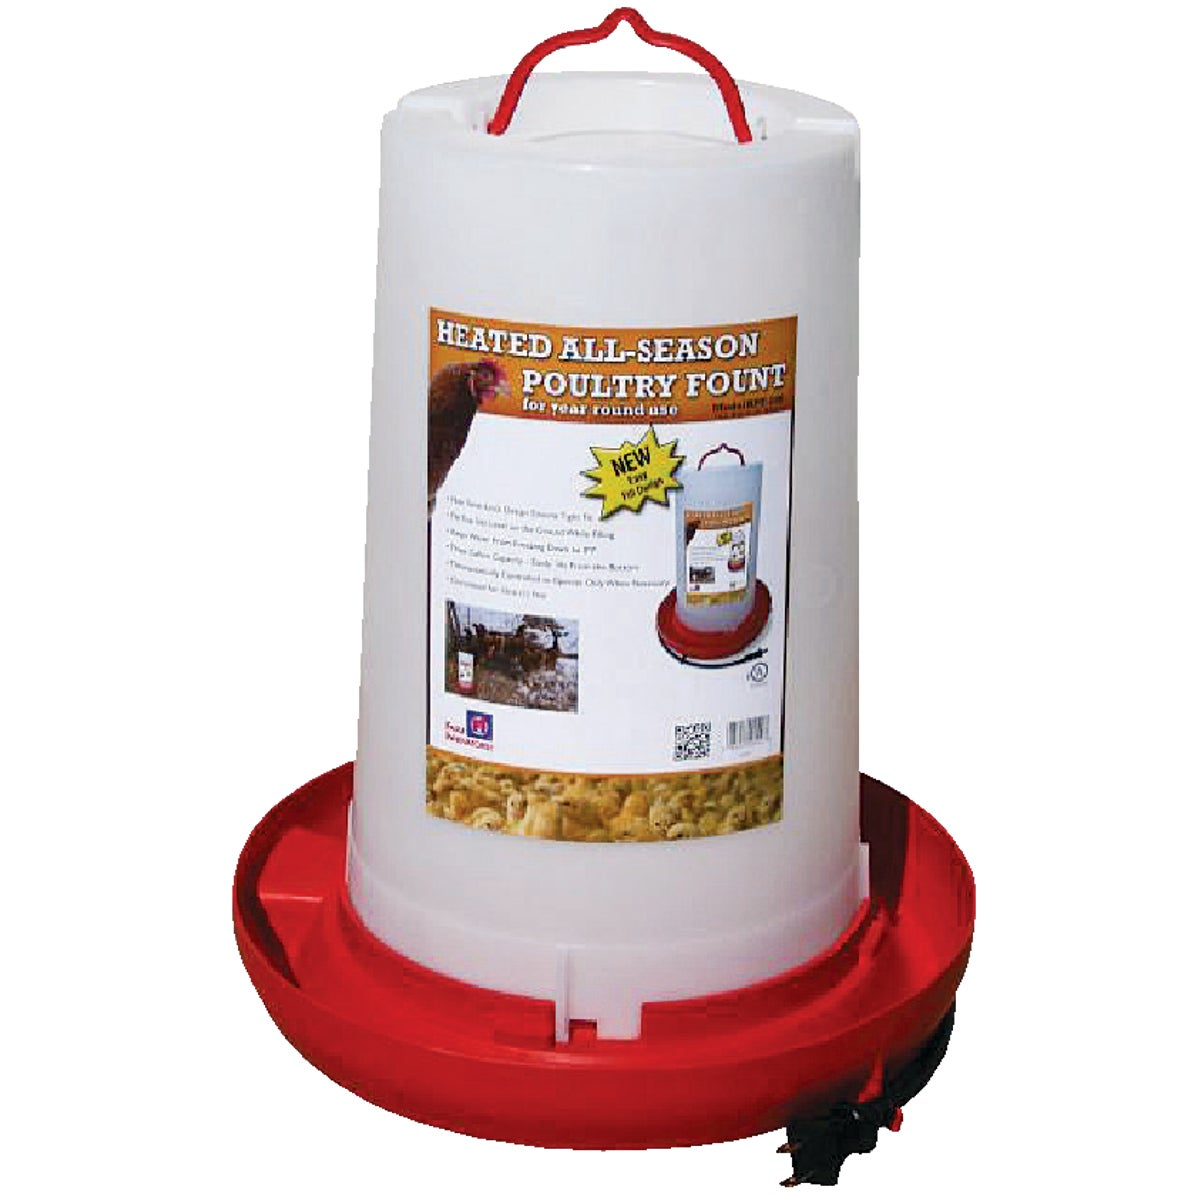 HEATED POULTRY FOUNT - HPF100 by Farm Innovators Inc